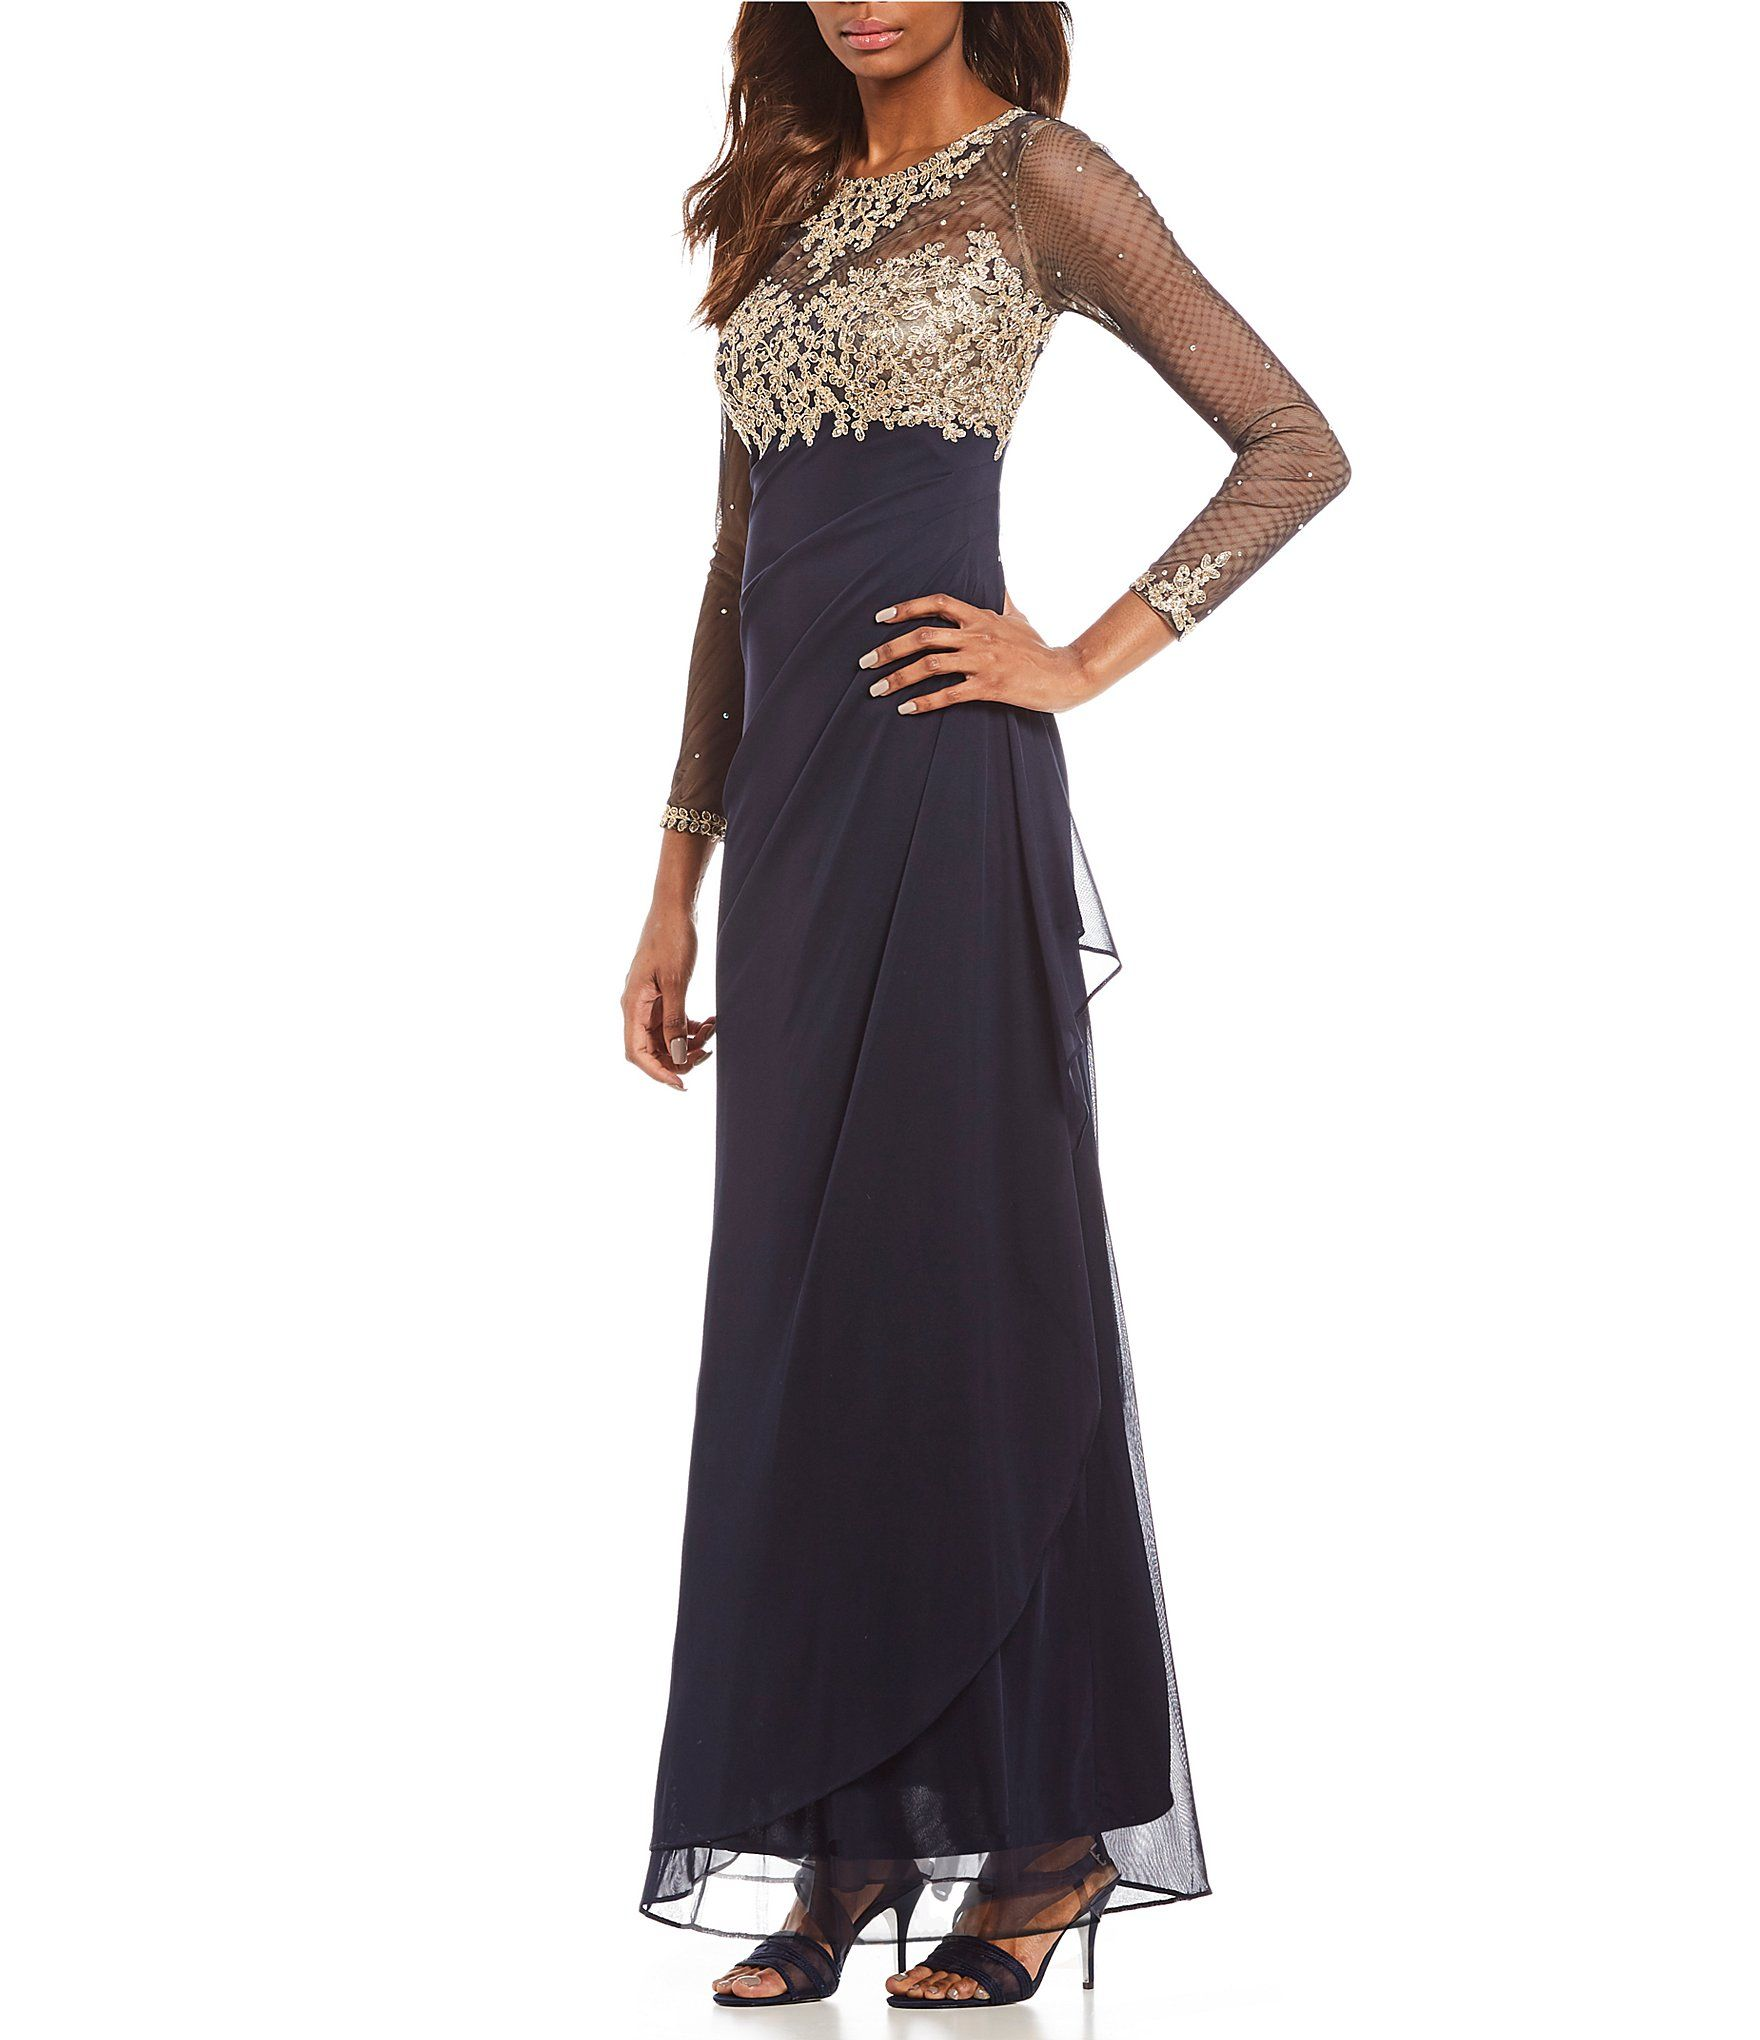 061111a60826b Shop for Xscape Long Sleeve Gold Embroidered Rouched Gown at Dillards.com.  Visit Dillards.com to find clothing, accessories, shoes, cosmetics & more.